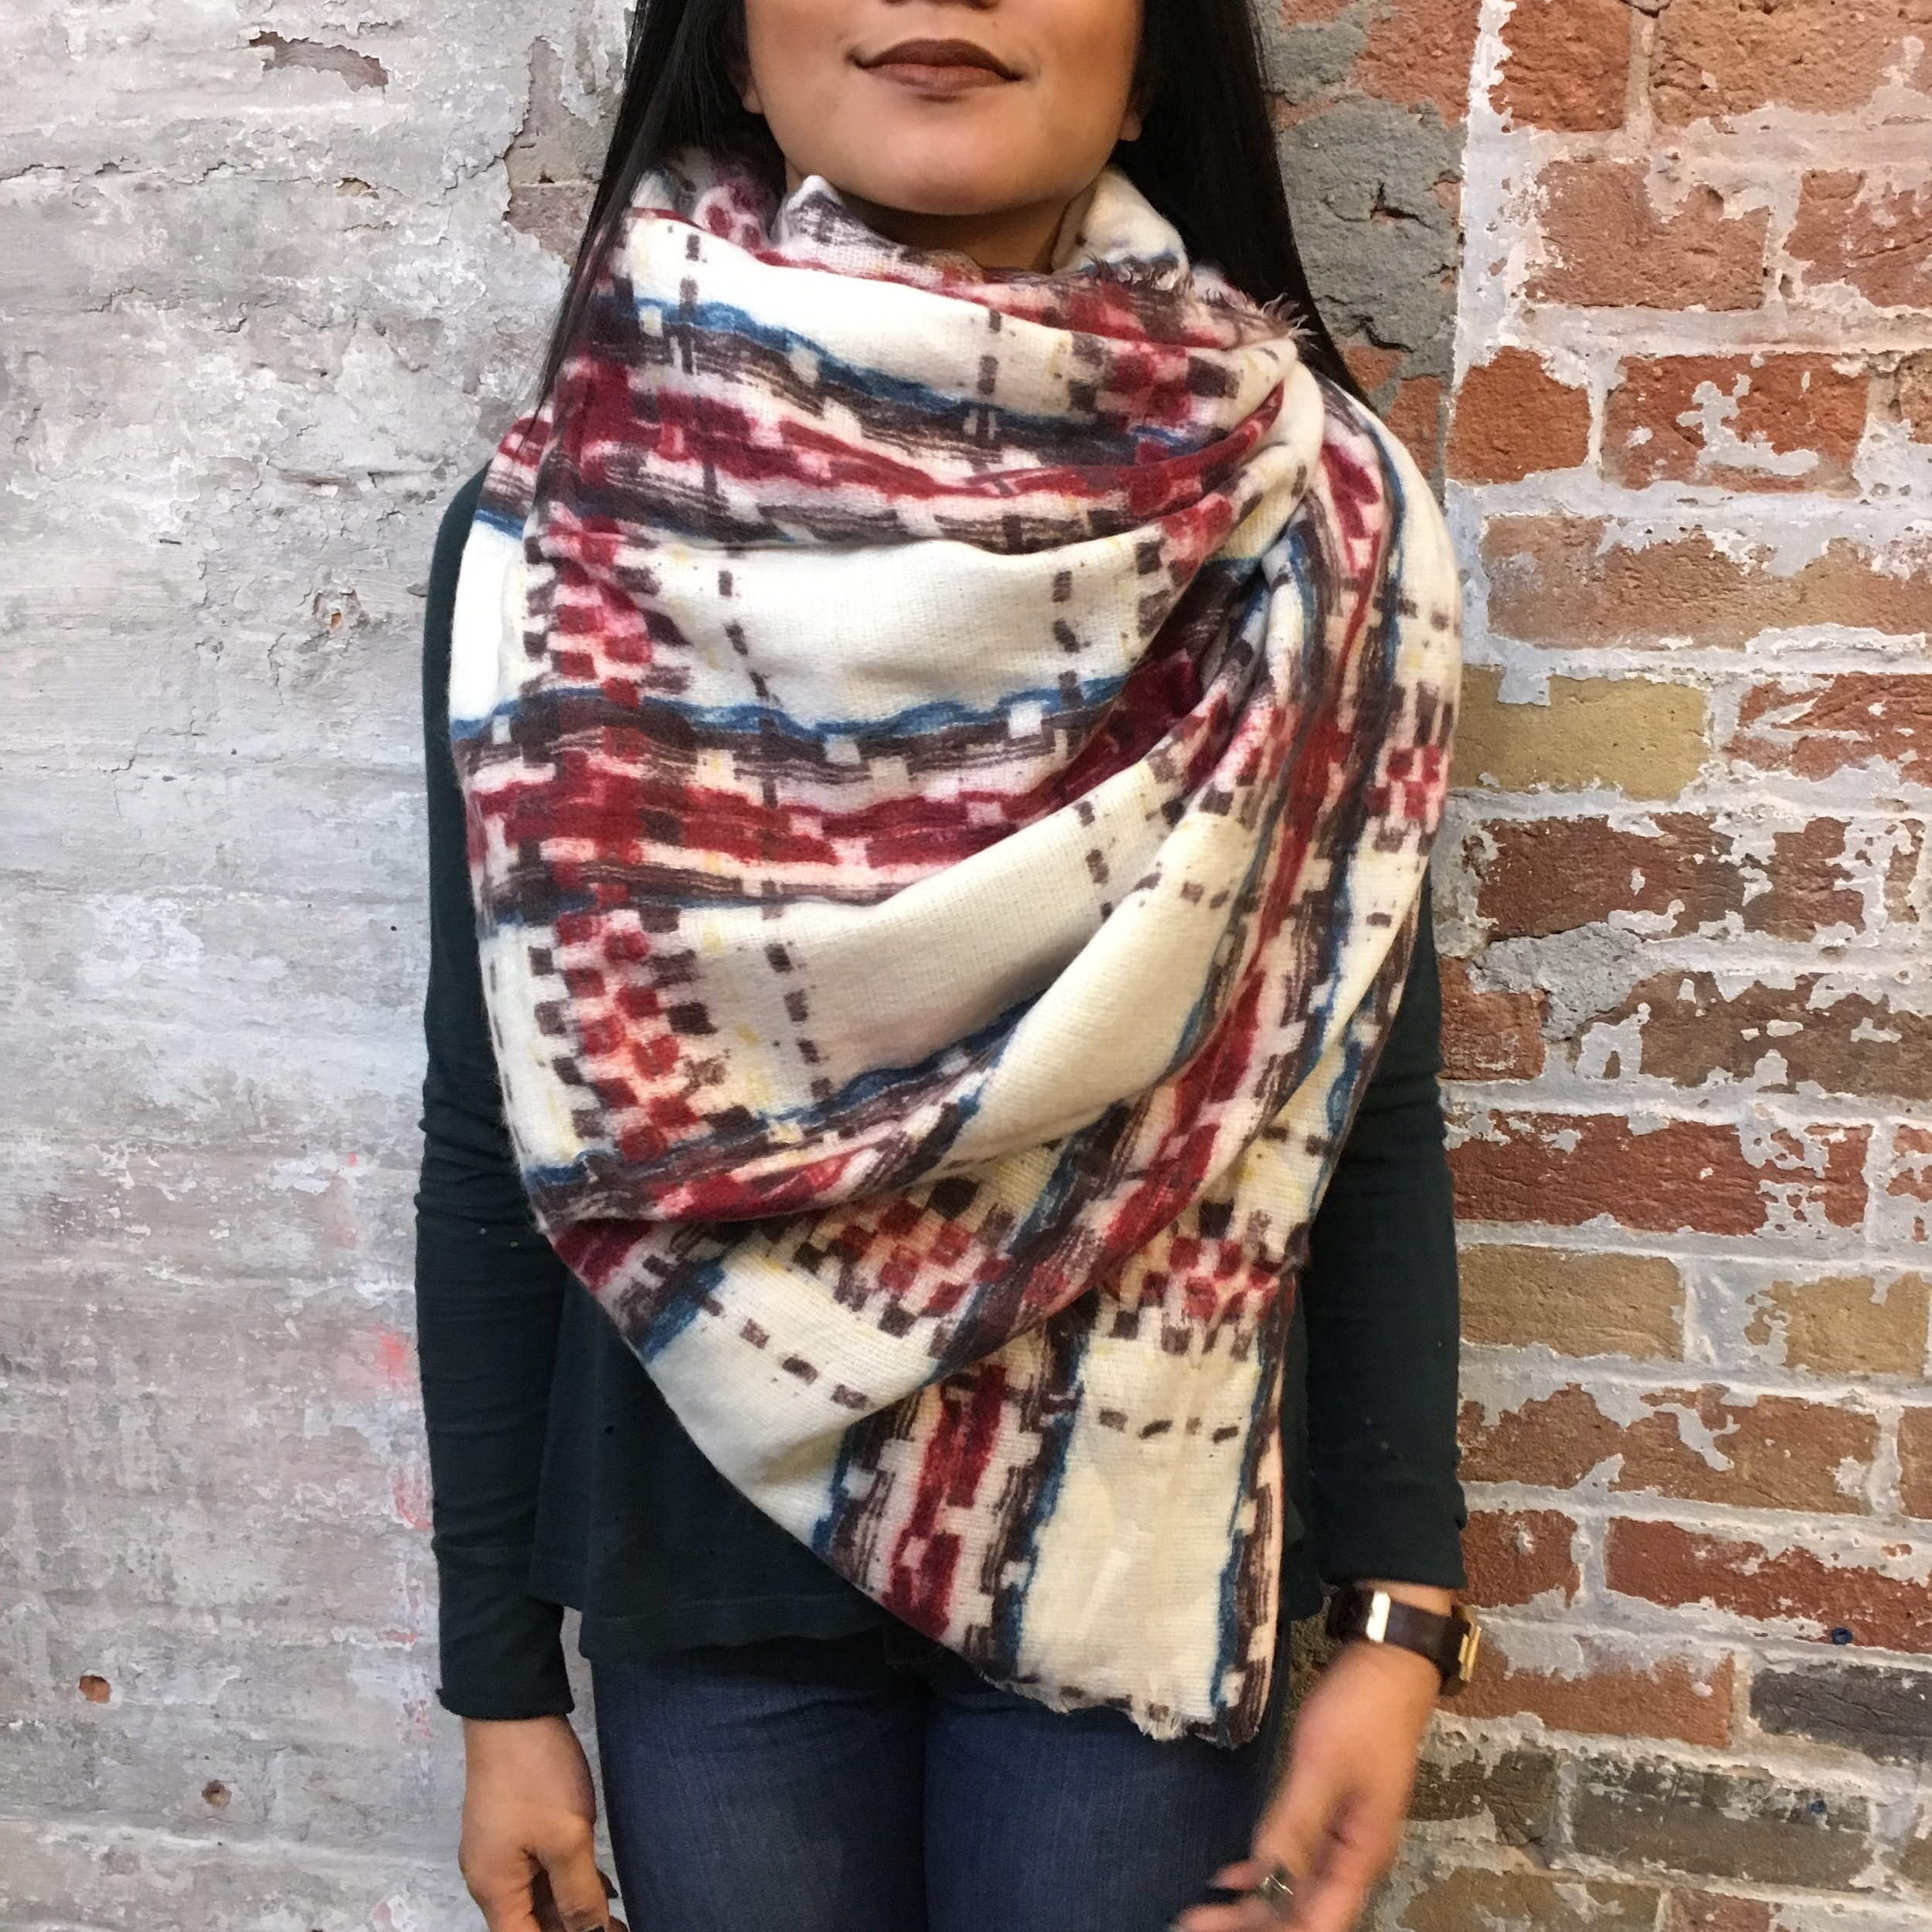 Square scarf: Fold the scarf in half to make a triangle.  Gather two ends of the triangle over and around your neck, meeting the point hanging down the front of your body. Tuck the two ends under and tie. Fluff and don't be afraid to go big.